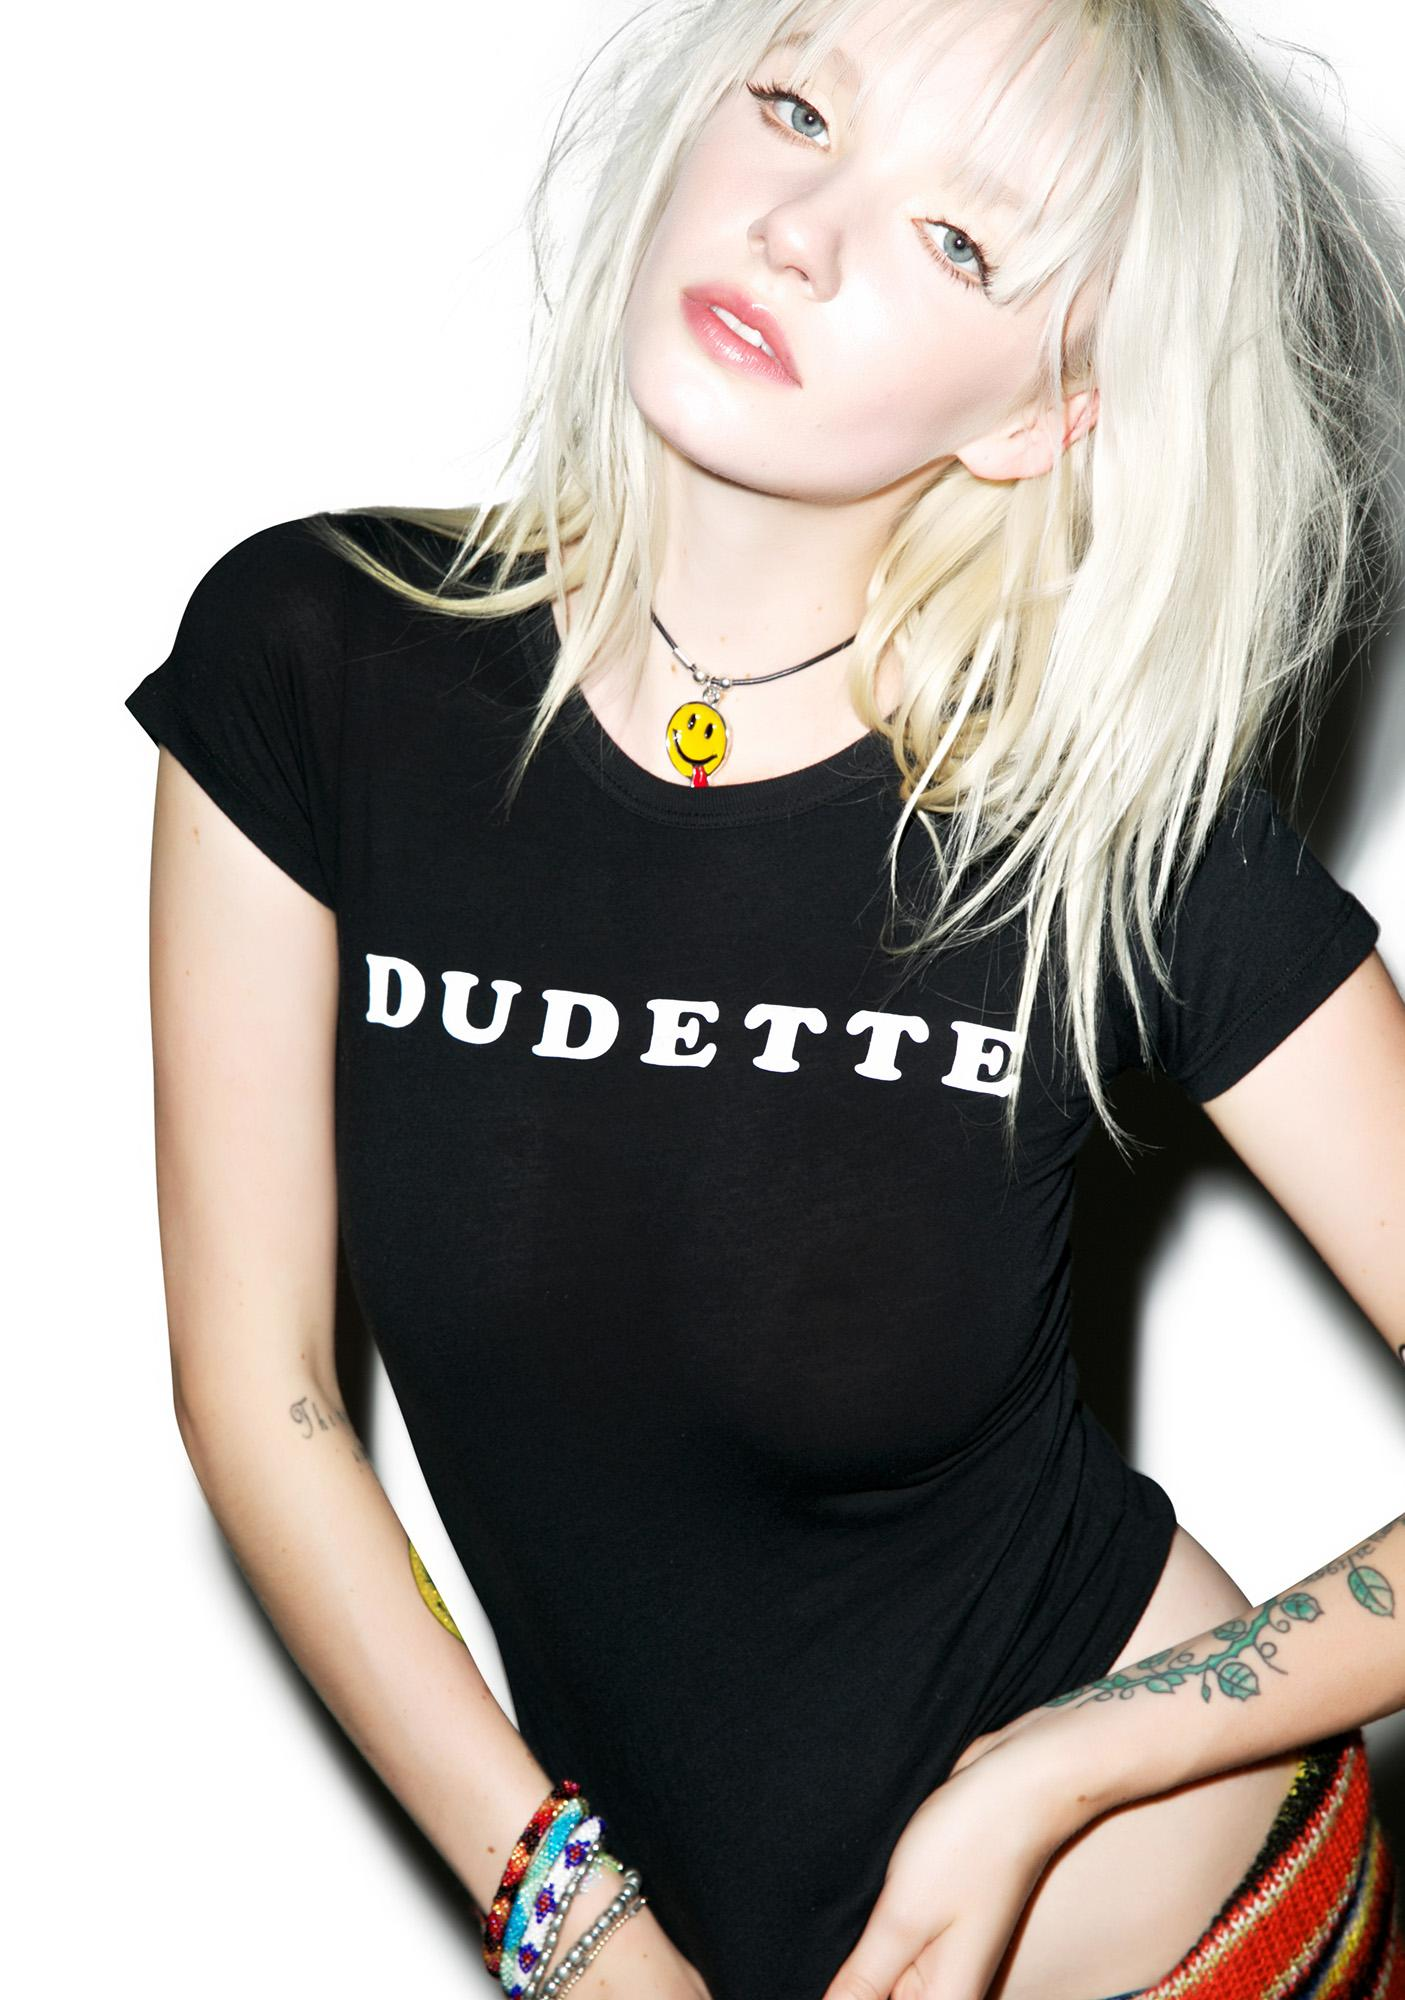 Valfré Dudette Baby Tee